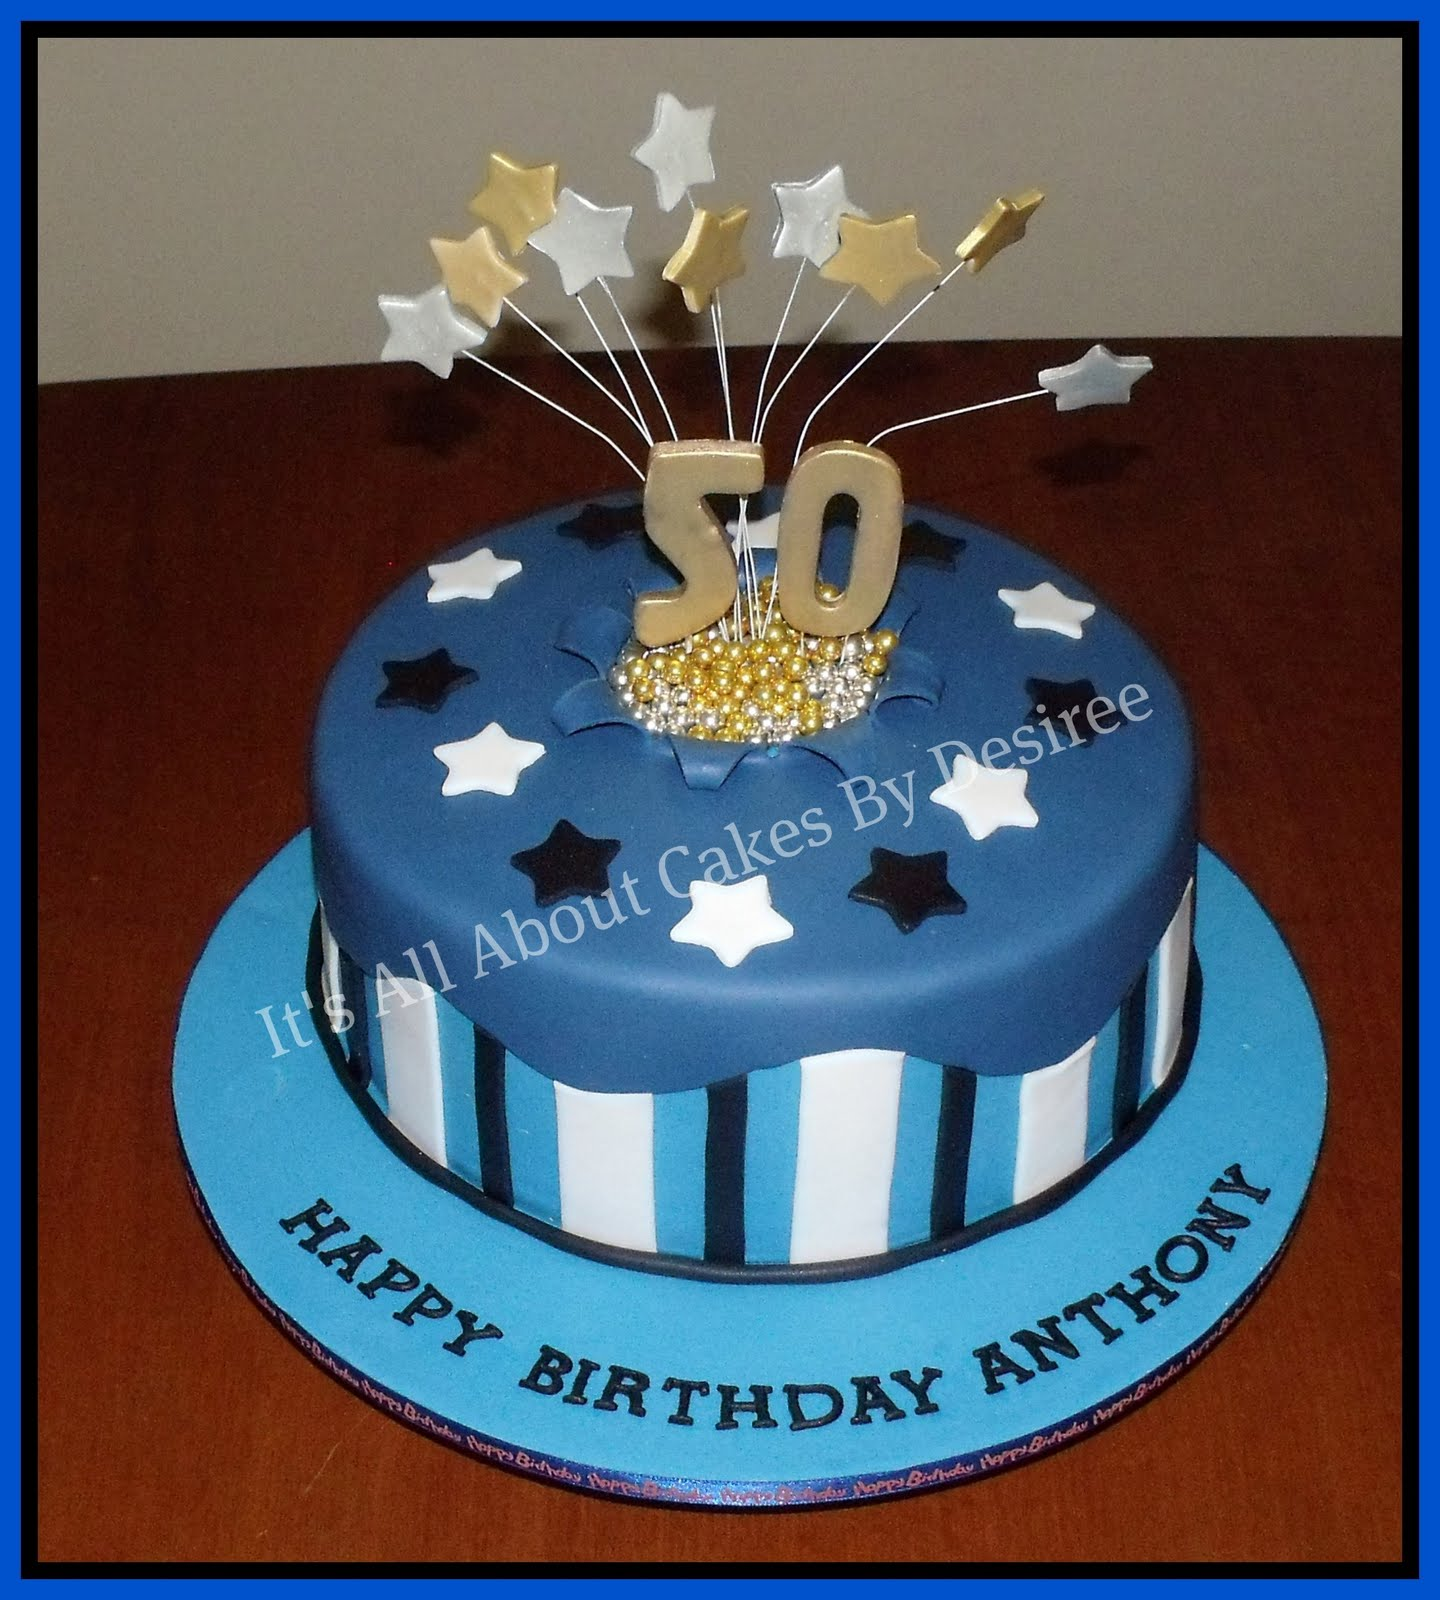 Naughty Birthday Cakes for Men http://itsallaboutcakesbydesiree.blogspot.com/2011/05/mens-cakes.html